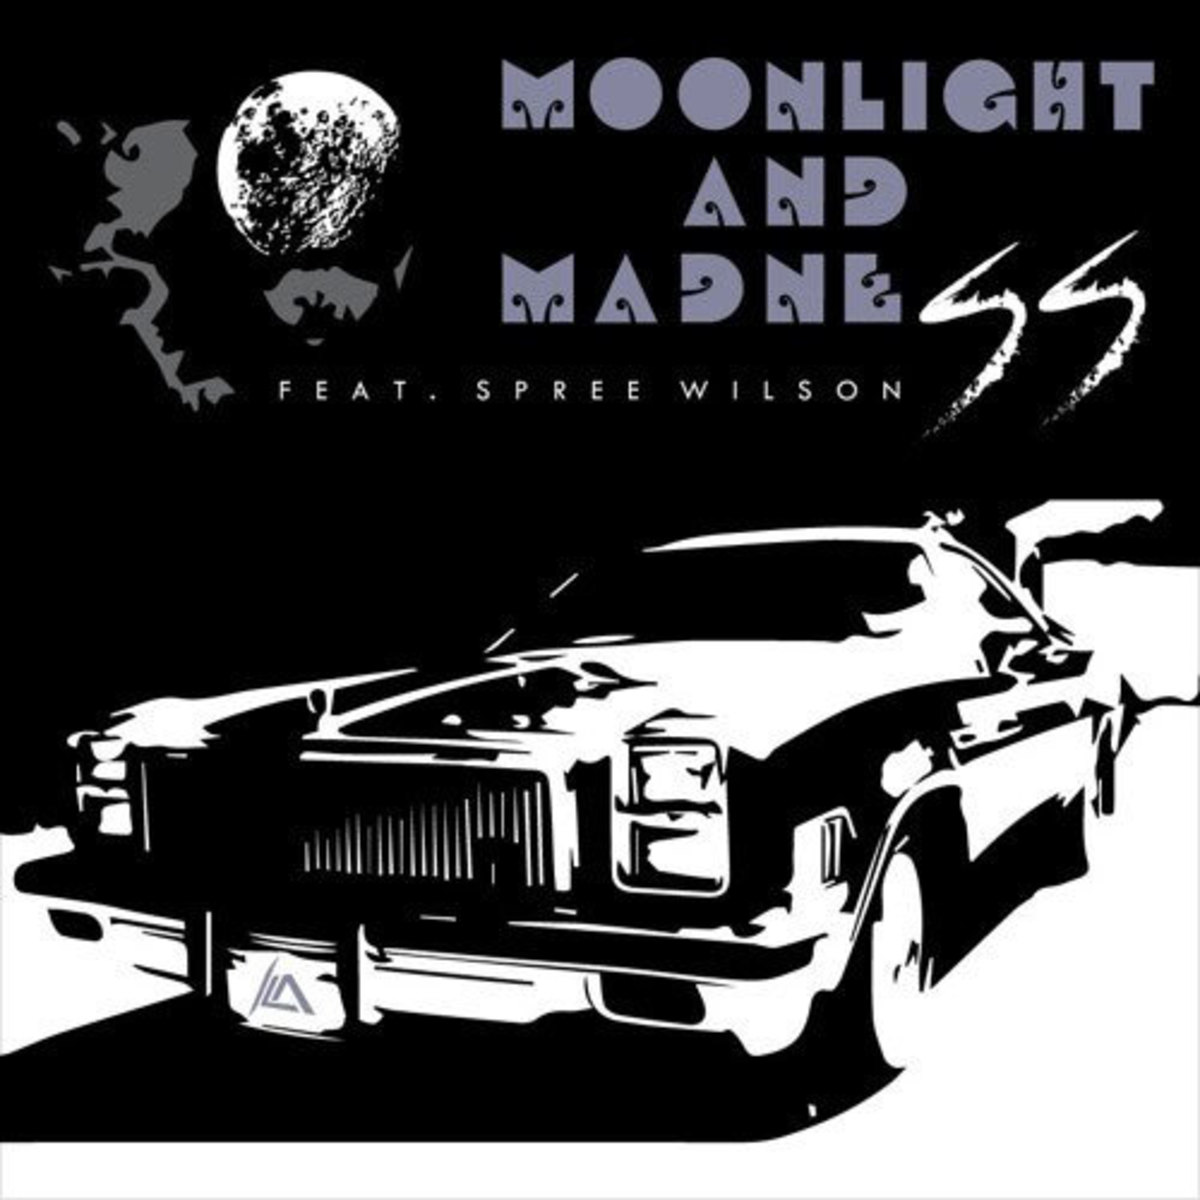 silas-moonlight-and-madness.jpg